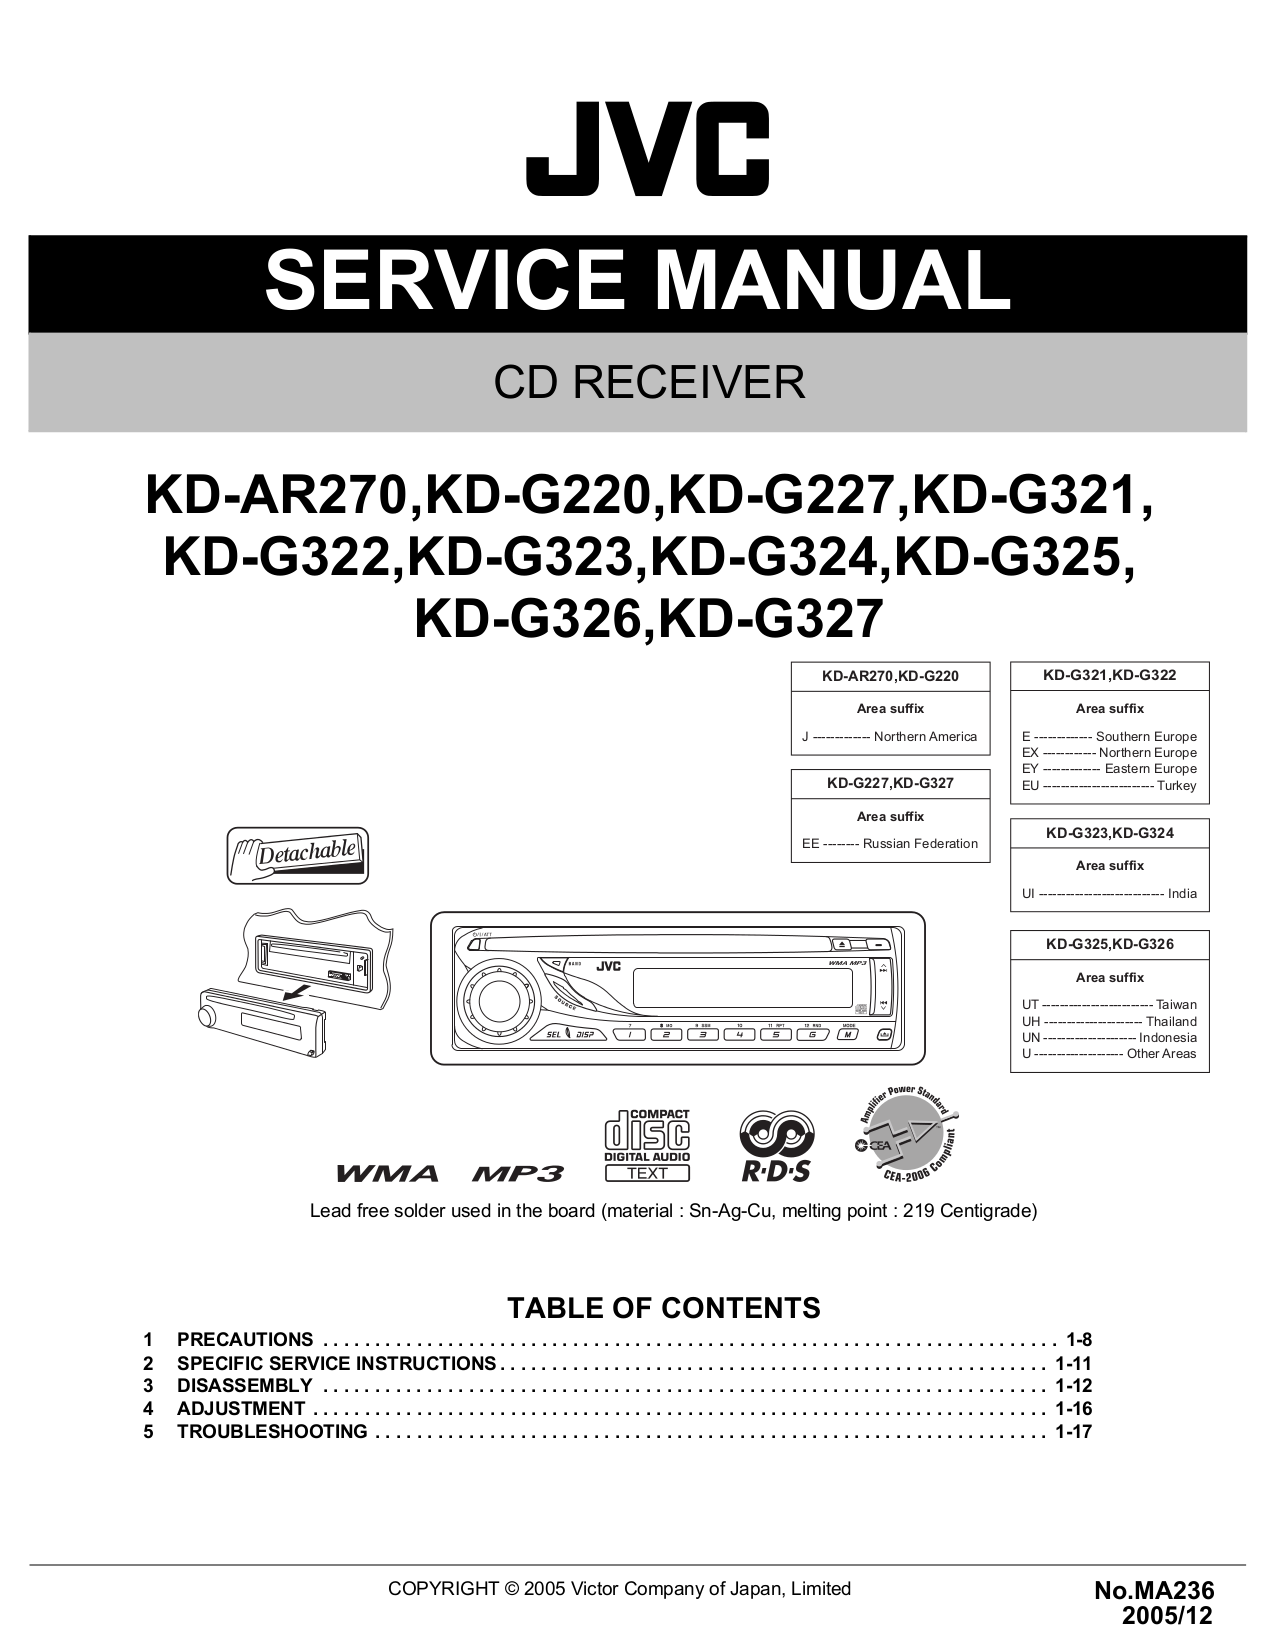 [SCHEMATICS_43NM]  TK_5411] Jvc Kd R330 Wiring Diagram Moreover Pioneer Car Stereo Wiring  Harness Download Diagram | Jvc Kd R730bt Car Stereo Wiring Diagram |  | Animo Sequ Pendu Awni Bepta Perm Phae Mohammedshrine Librar Wiring 101